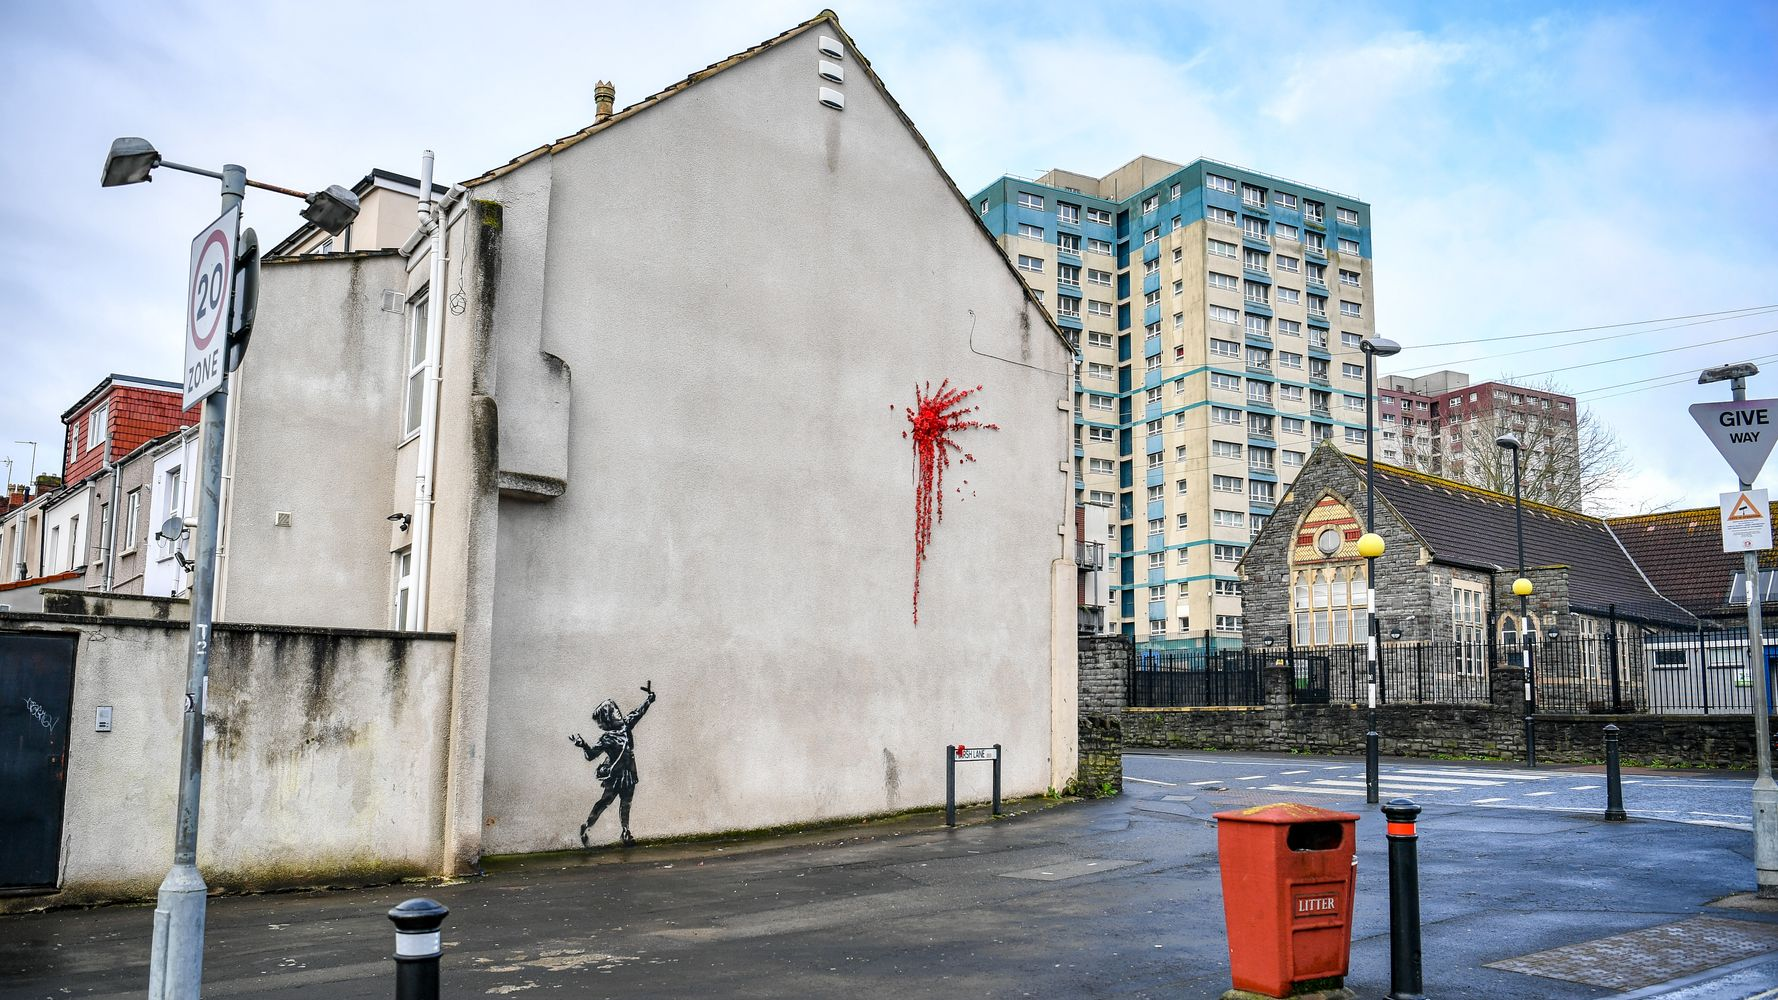 Banksy Returns To Teenage Stomping Grounds With New 'Valentine's' Mural